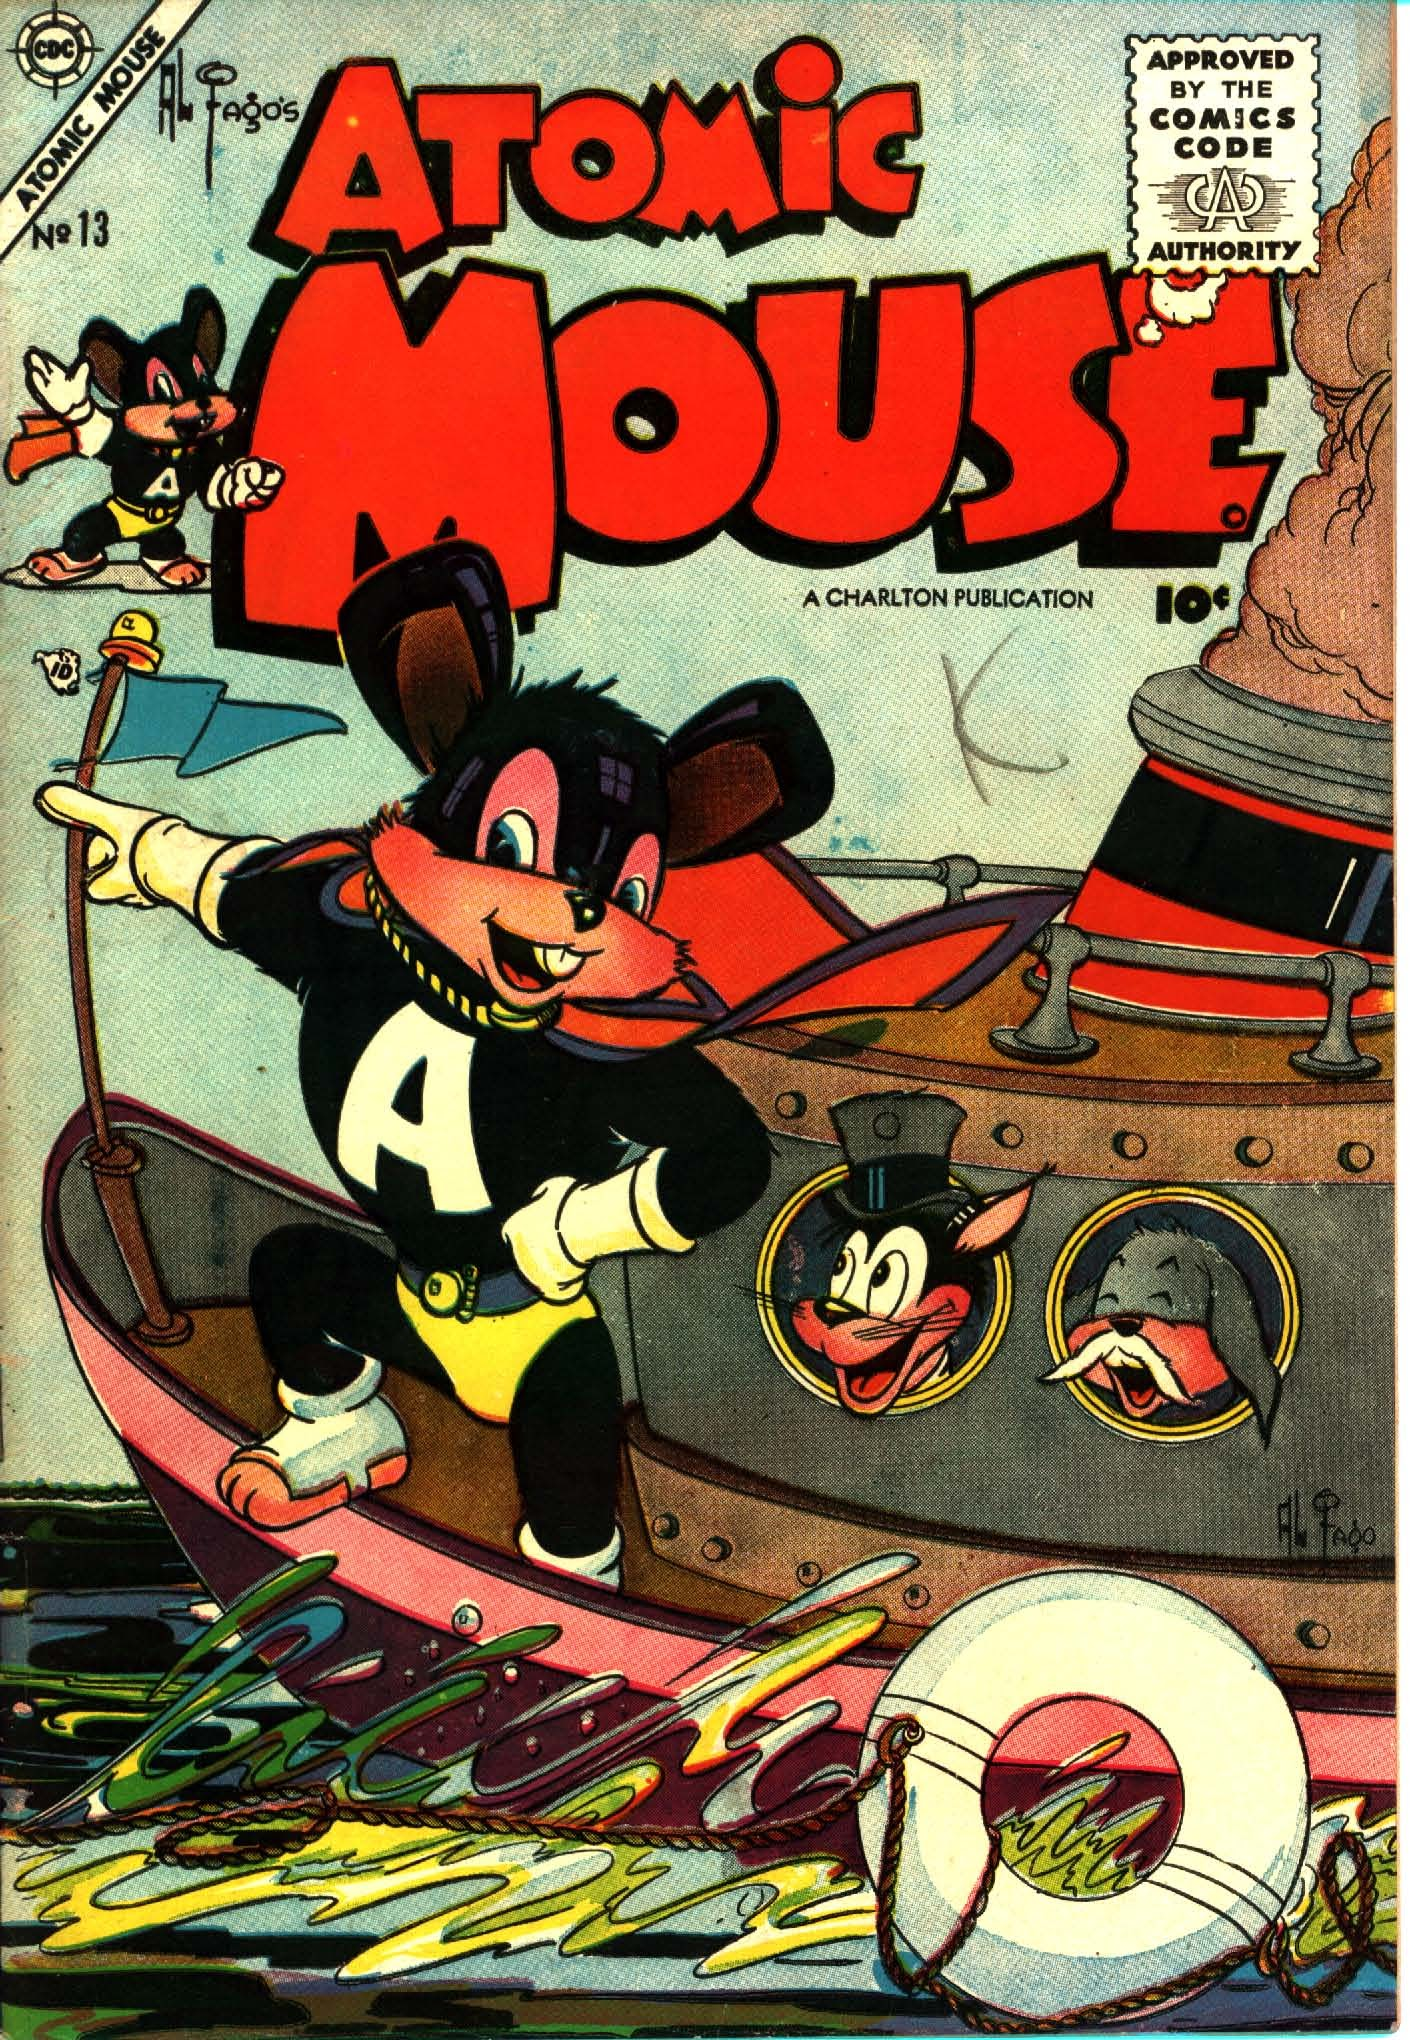 Atomic Mouse 13 Page 1